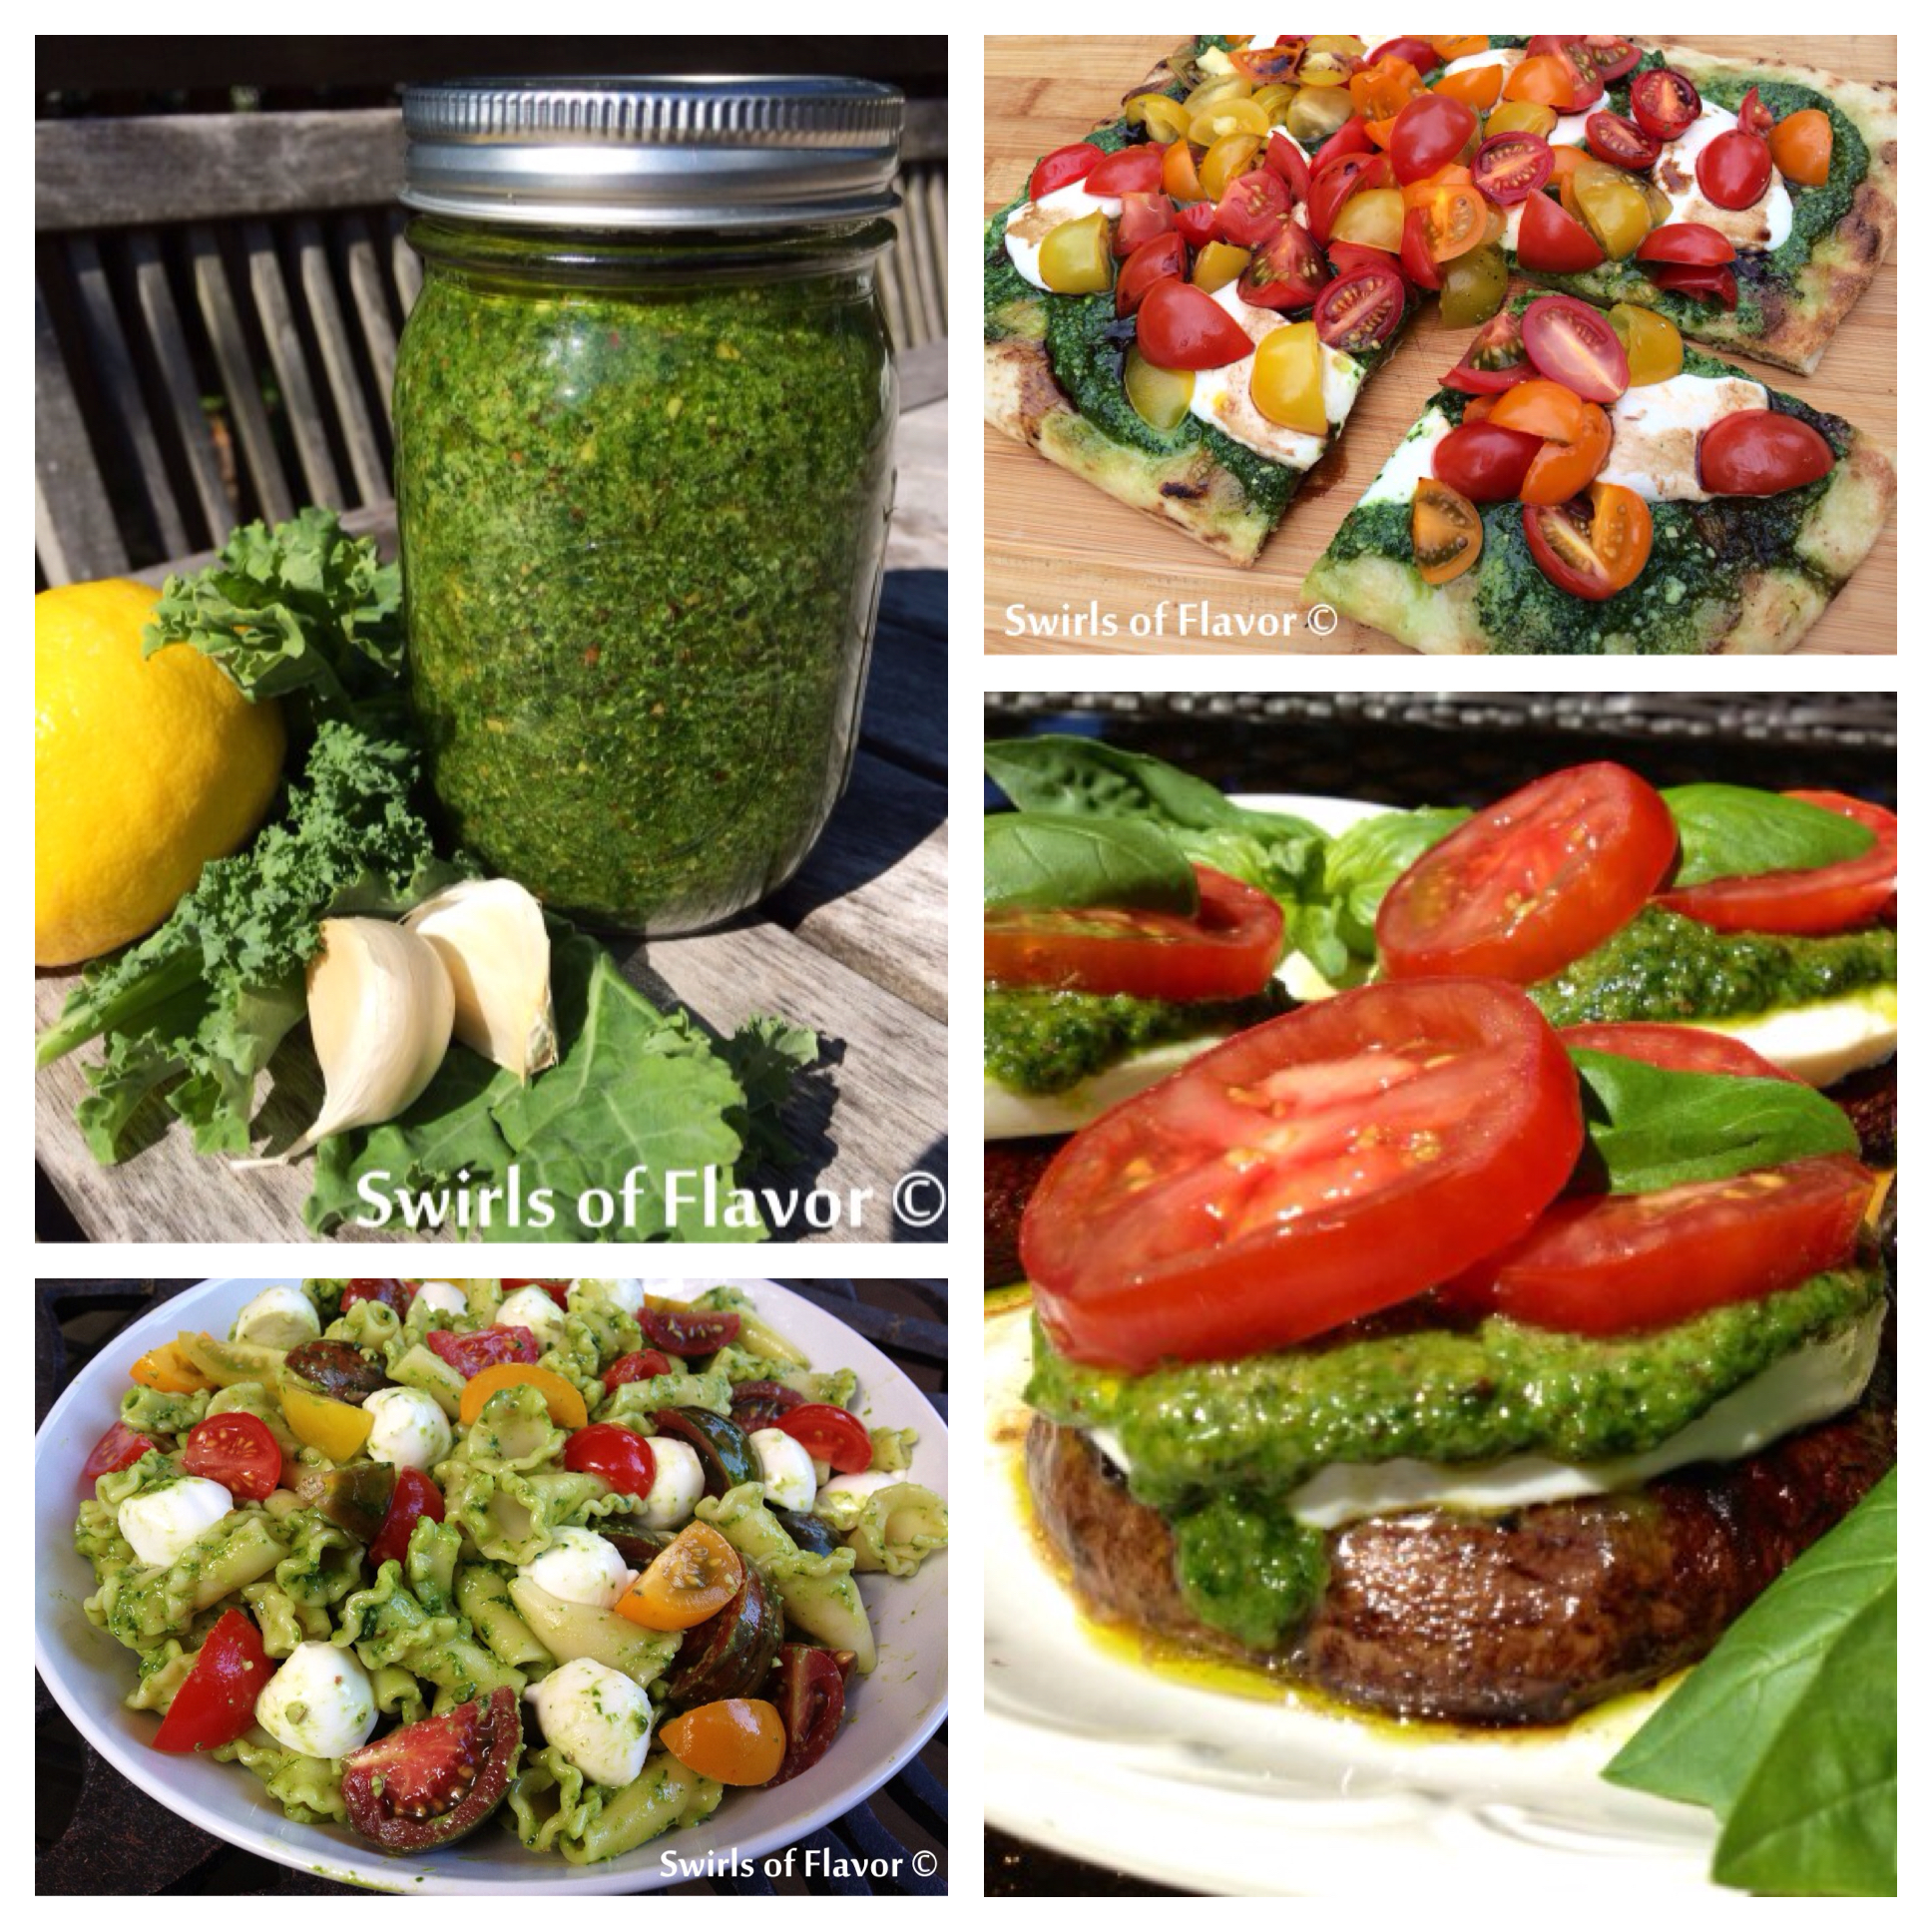 Everyone loves pesto and a Kale Pesto is a great new flavorful twist on the traditional! Toss it in a pasta salad, spread it on a pizza, or top a grilled portobello mushroom! The possibilities are endless! kale | pesto | pizza | pasta | salad | vegetarian